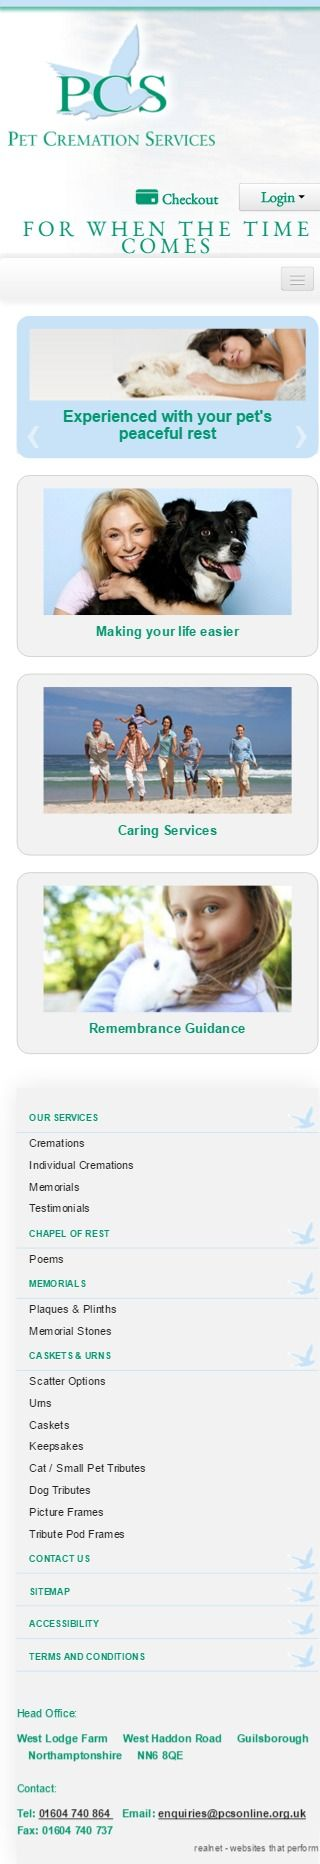 PCS - Pet Cremation Services  Pet Cremation Services are a leading, individual pet cremation specialist. Their success has been achieved through their commitment to high quality and a sensitive service - Mobile display